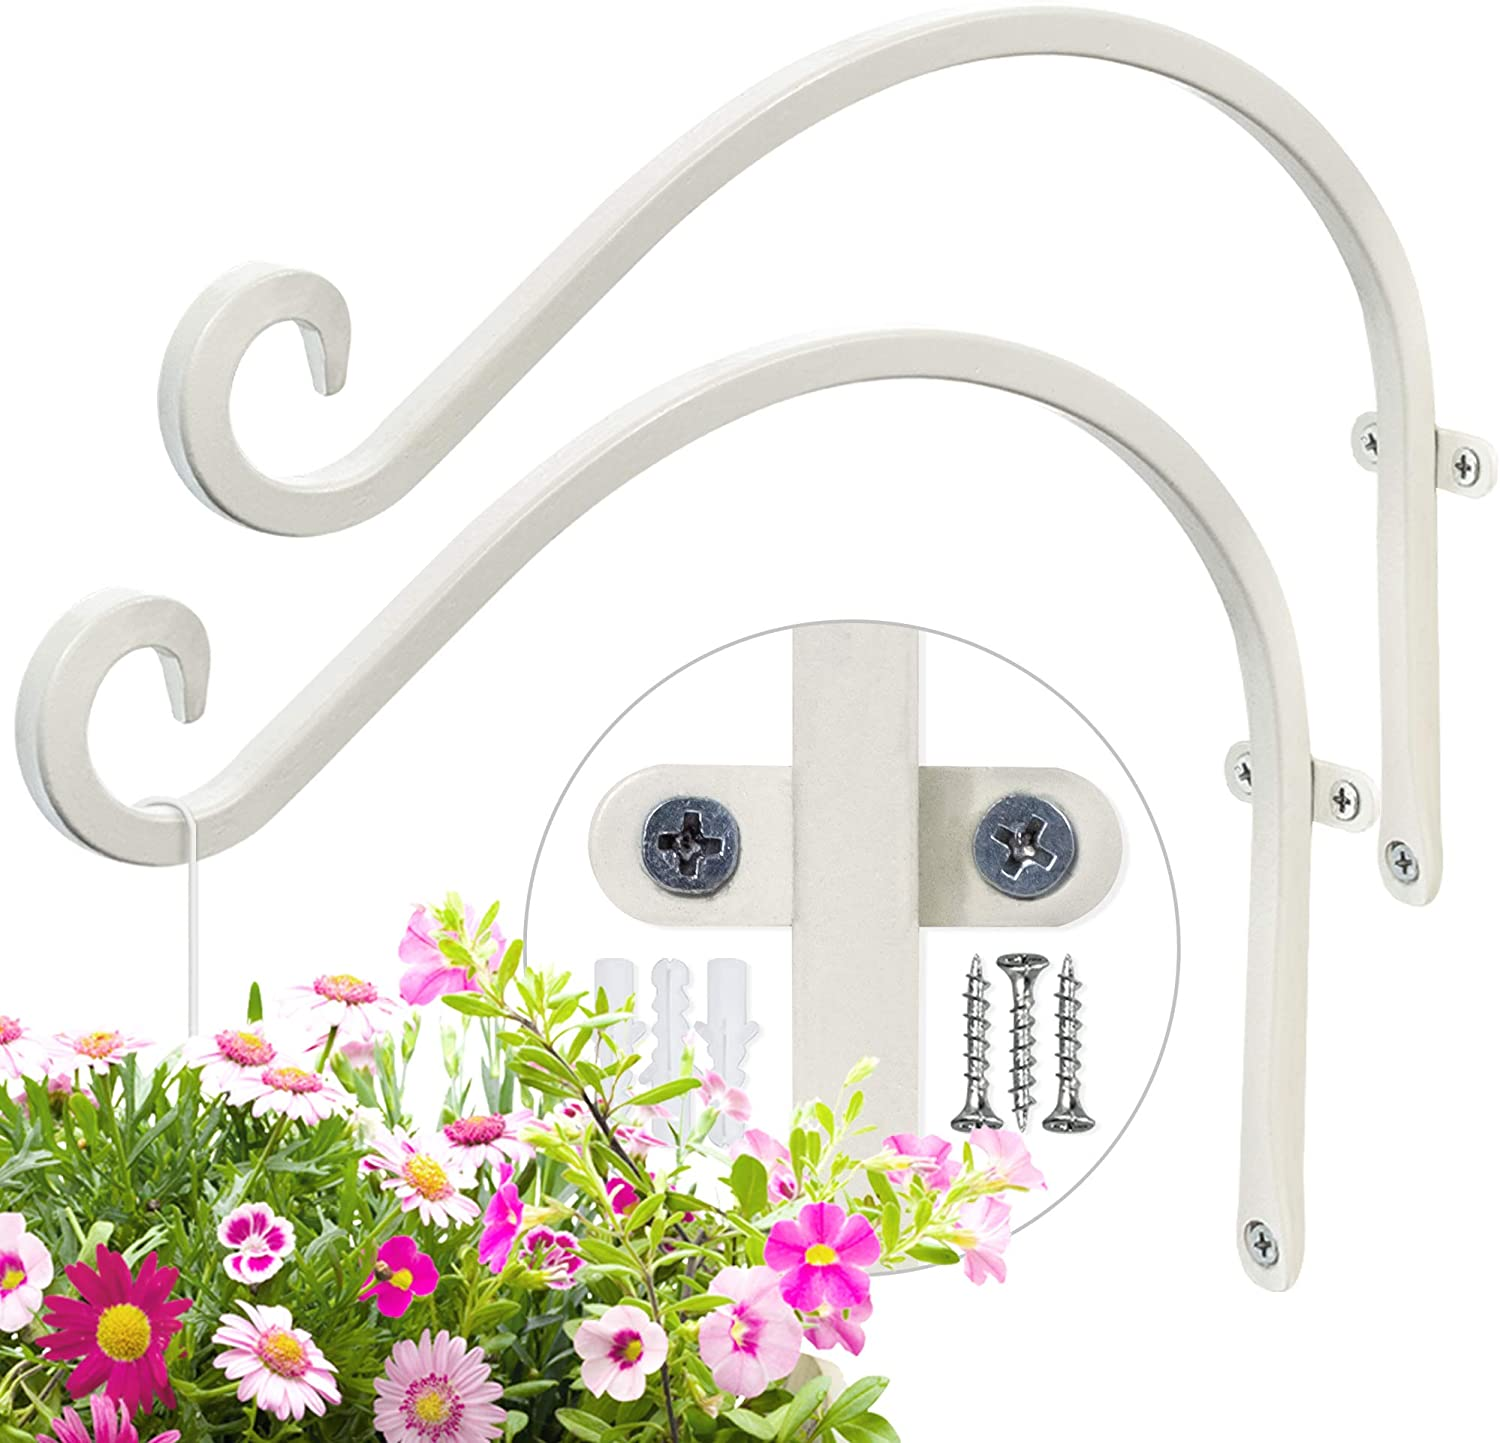 AJART Plant Hooks for Wall (2 Pieces-12Inches) Wall Hooks for Hanging Plants More Stable and Sturdy Cream-White Plant Hook.